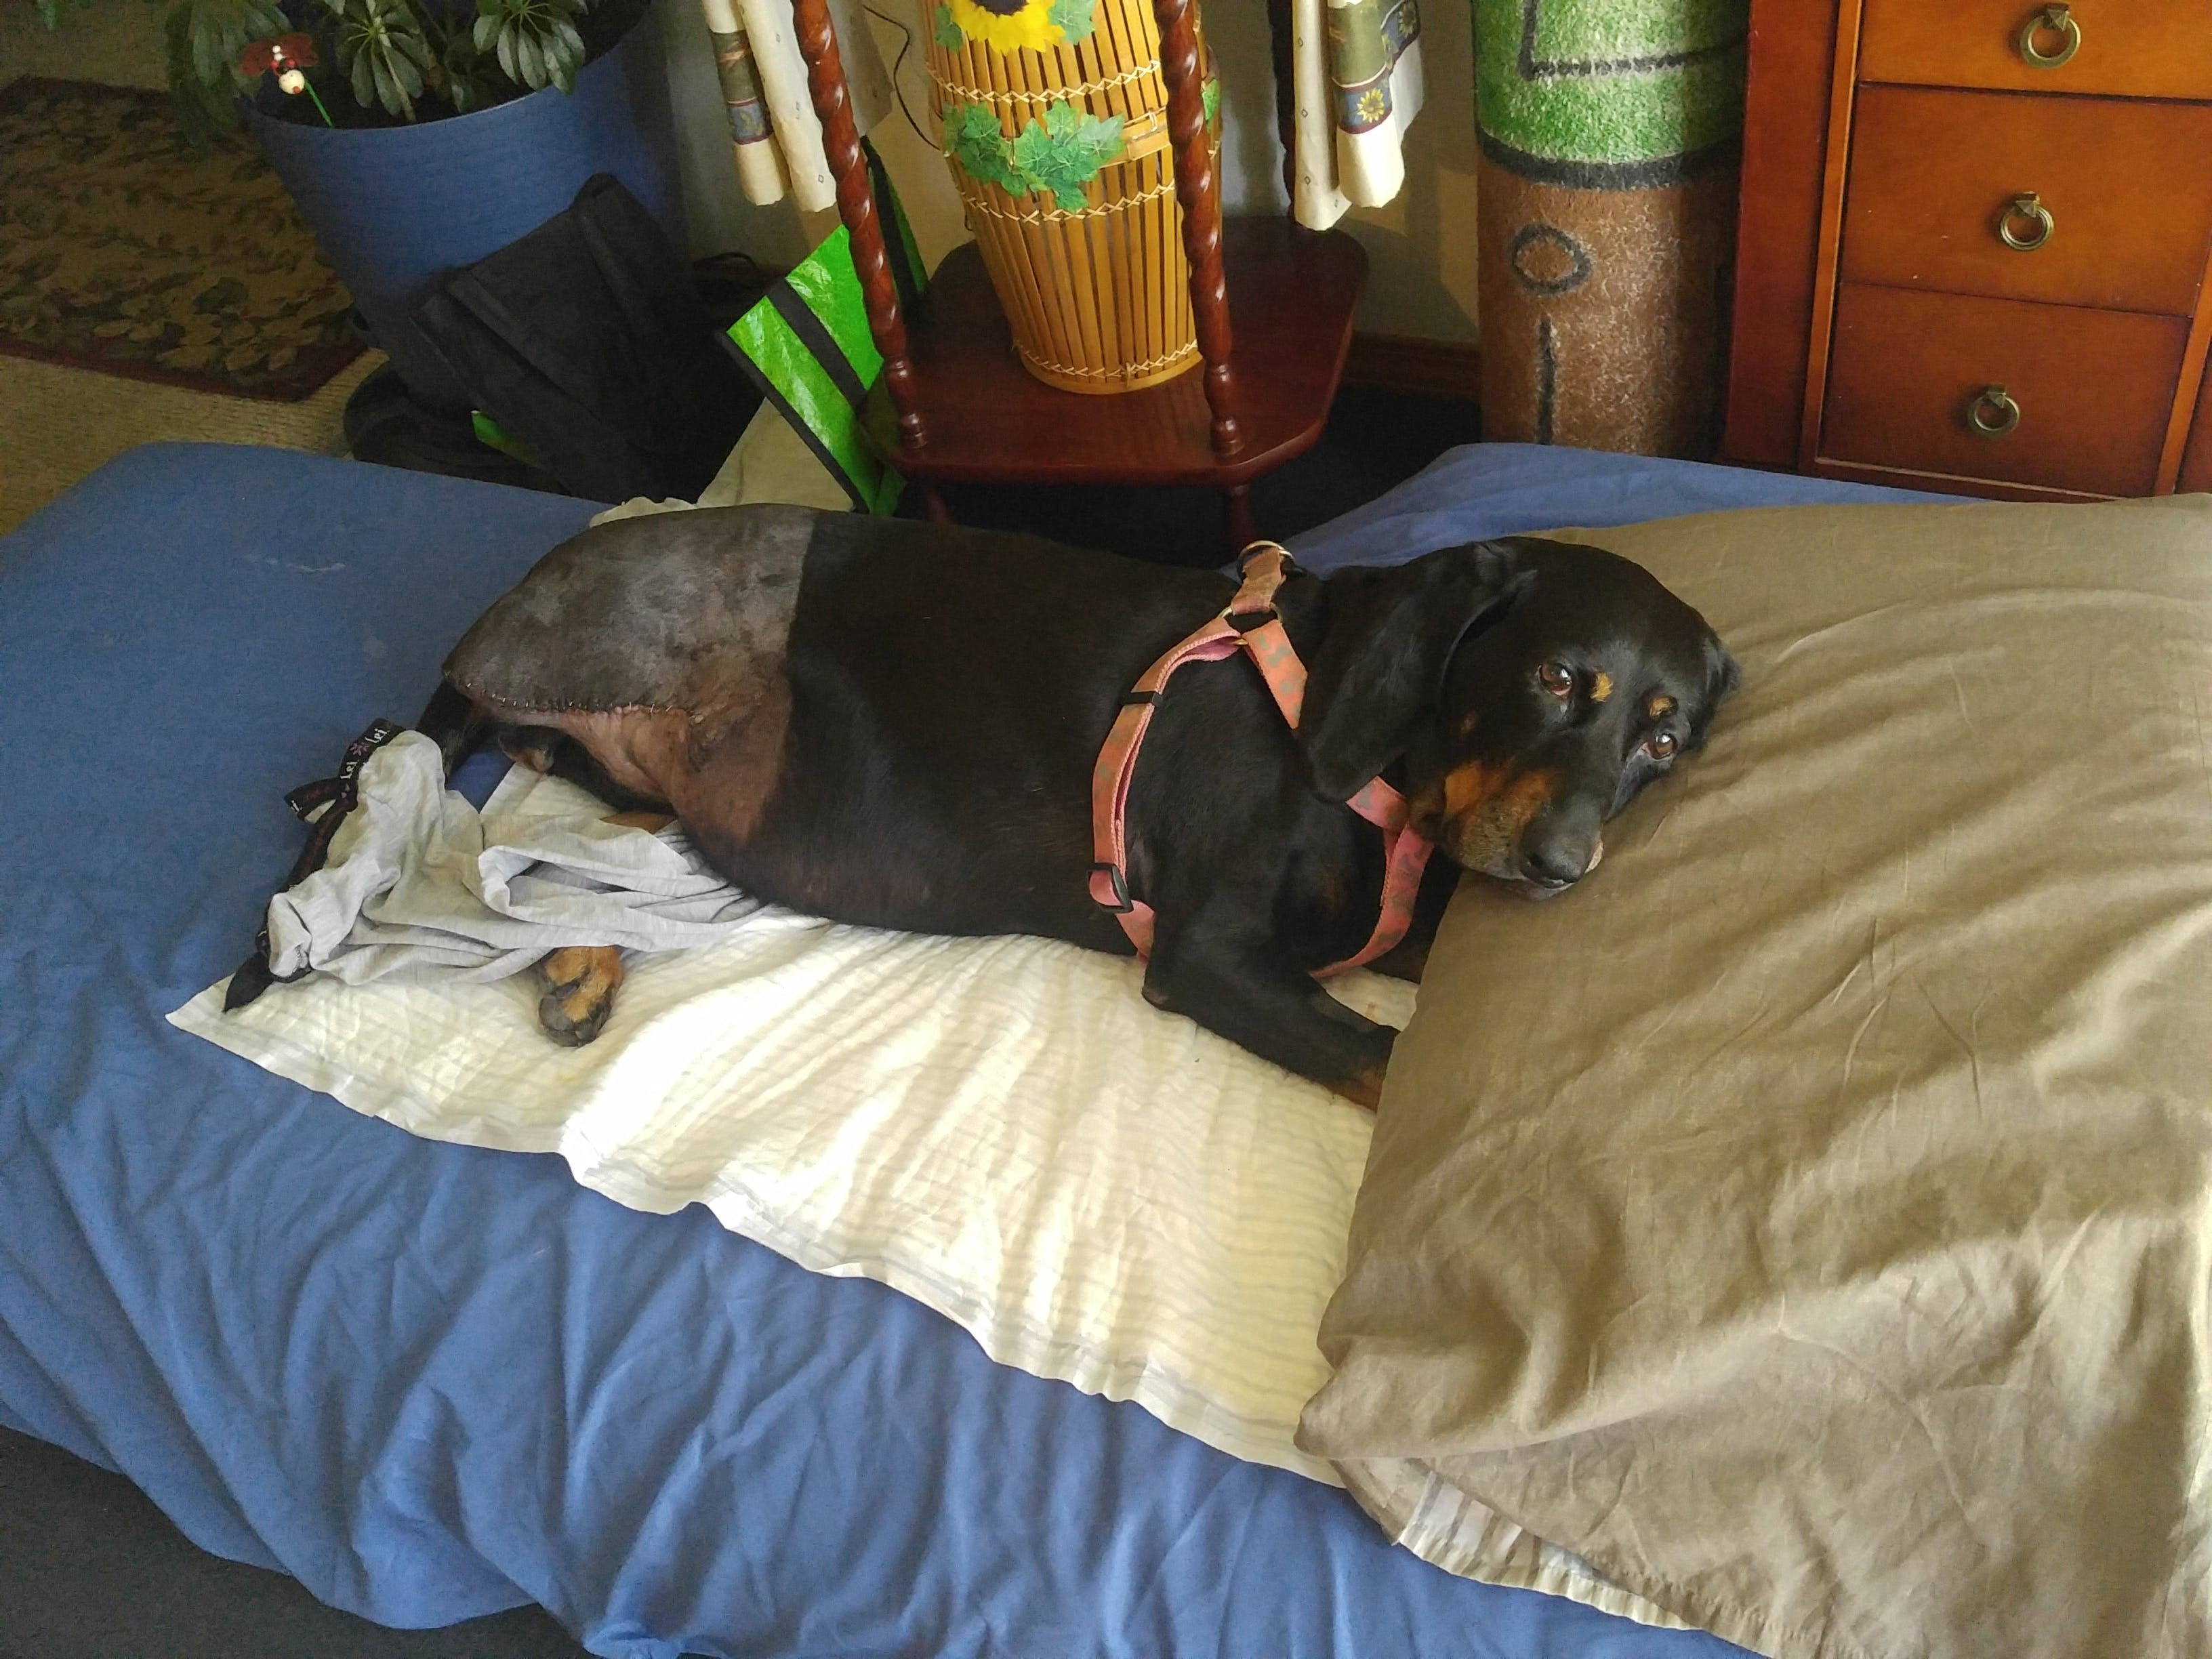 Annabell sissy poo's name story for Black & Tan Coonhound Dog Names